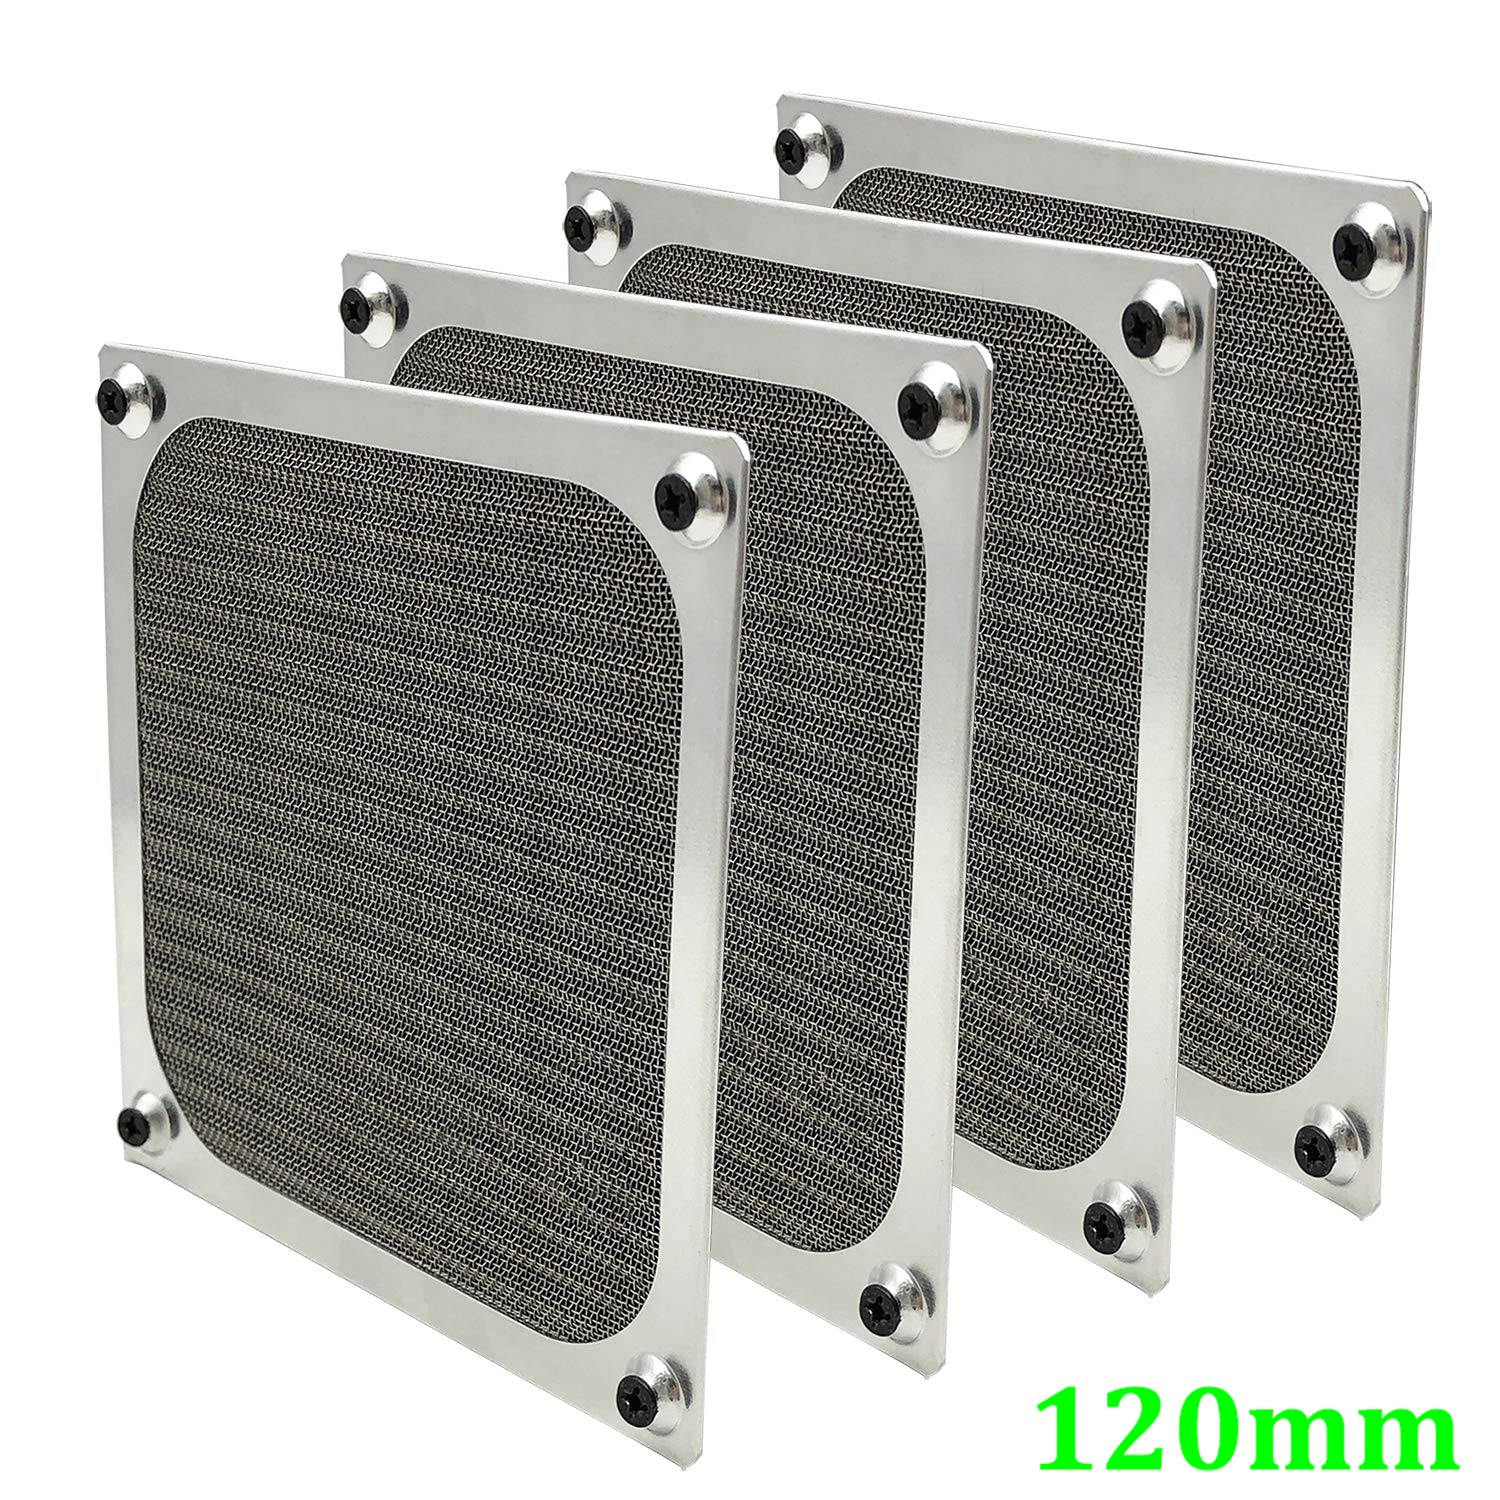 120mm Computer Fan Filter Grills with Screws, Ultra Fine Aluminum Mesh, Silver Color - 4 Pack